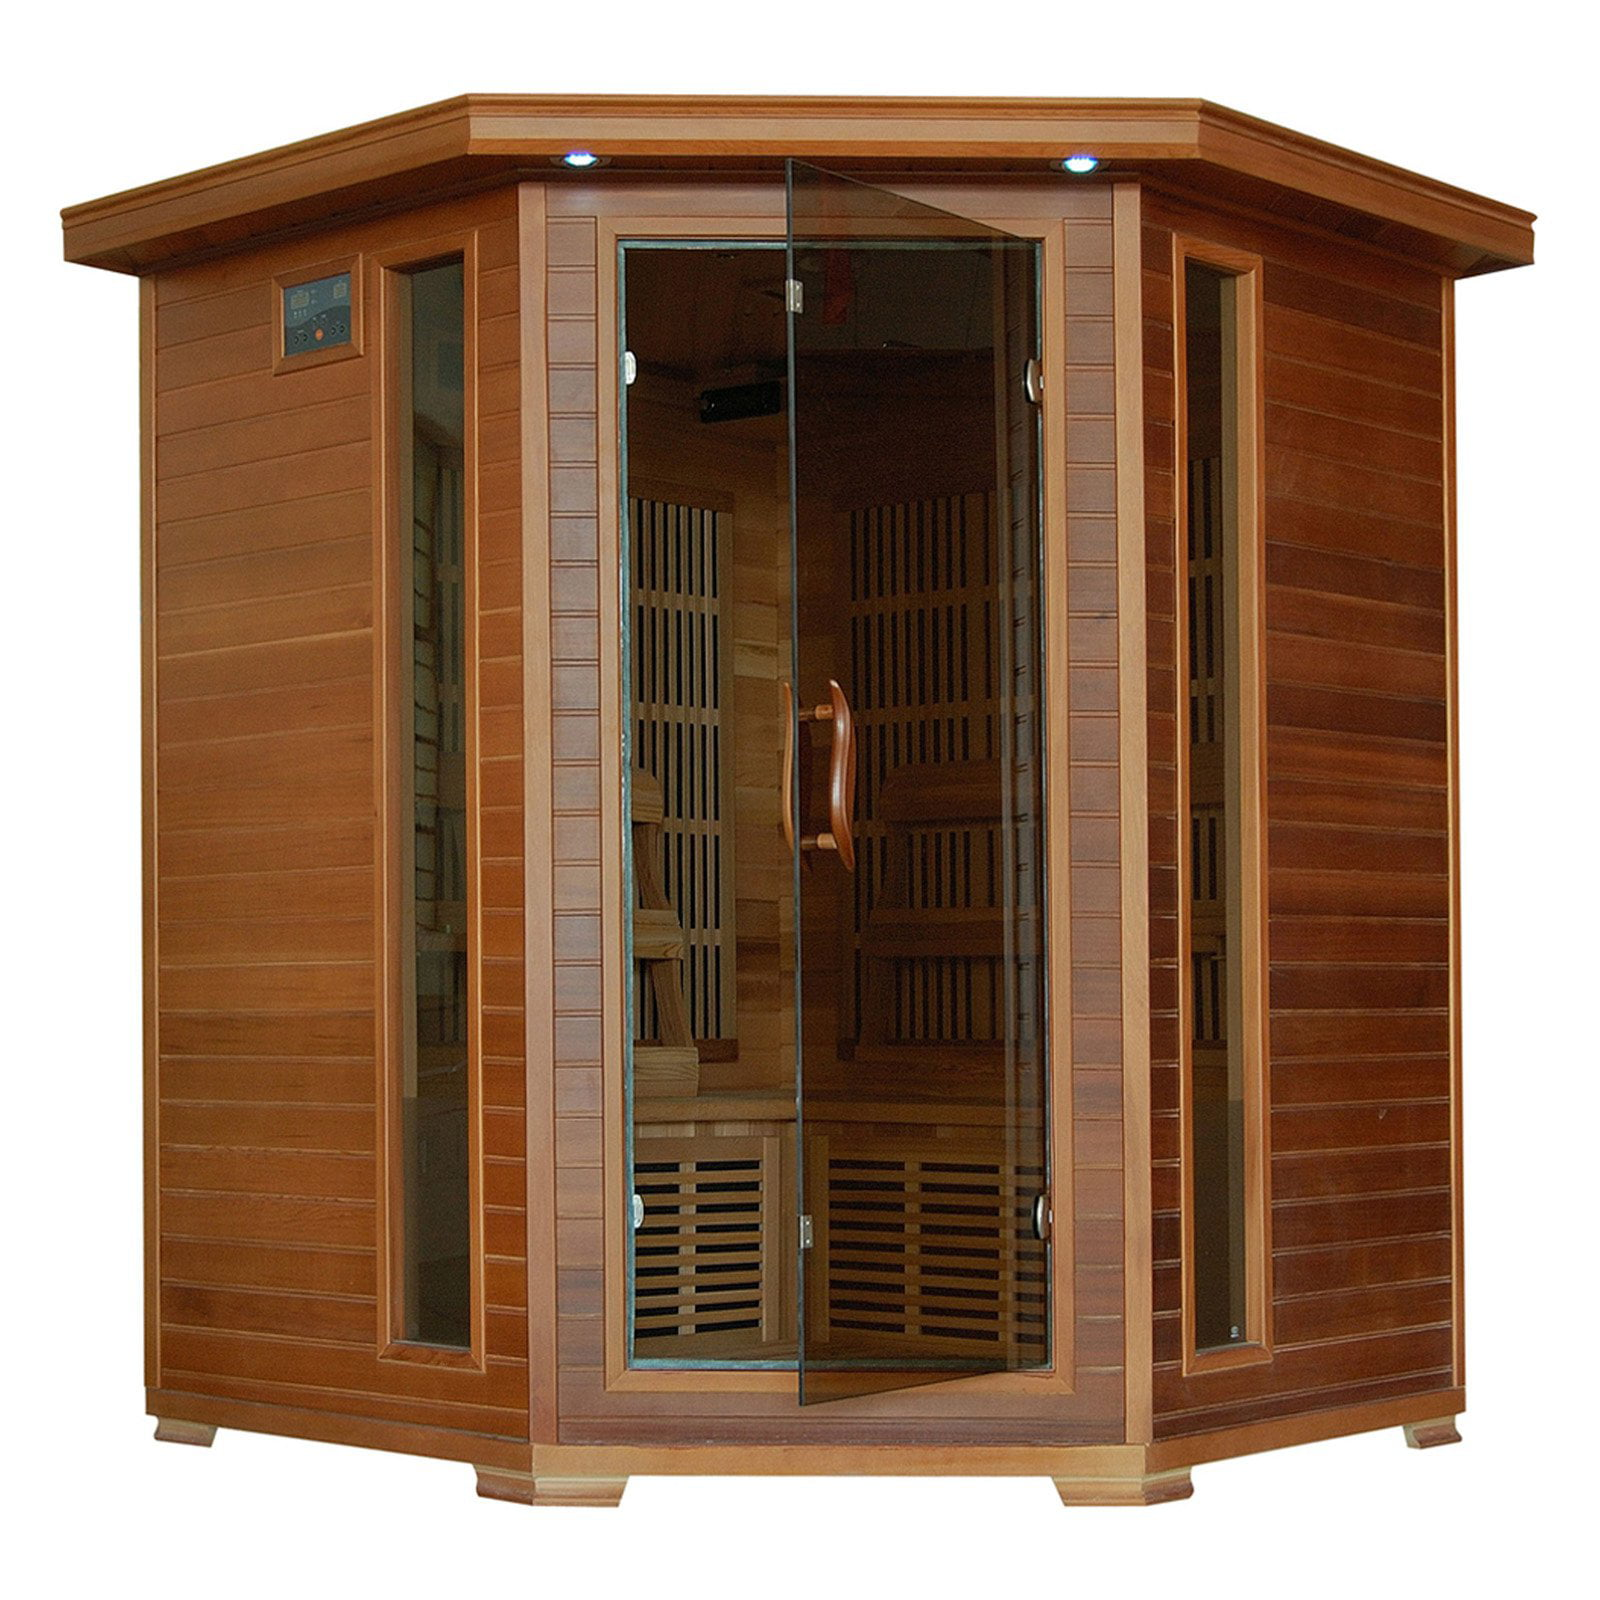 Radiant Sauna 4 Person Cedar Corner Infrared Sauna by Saunas